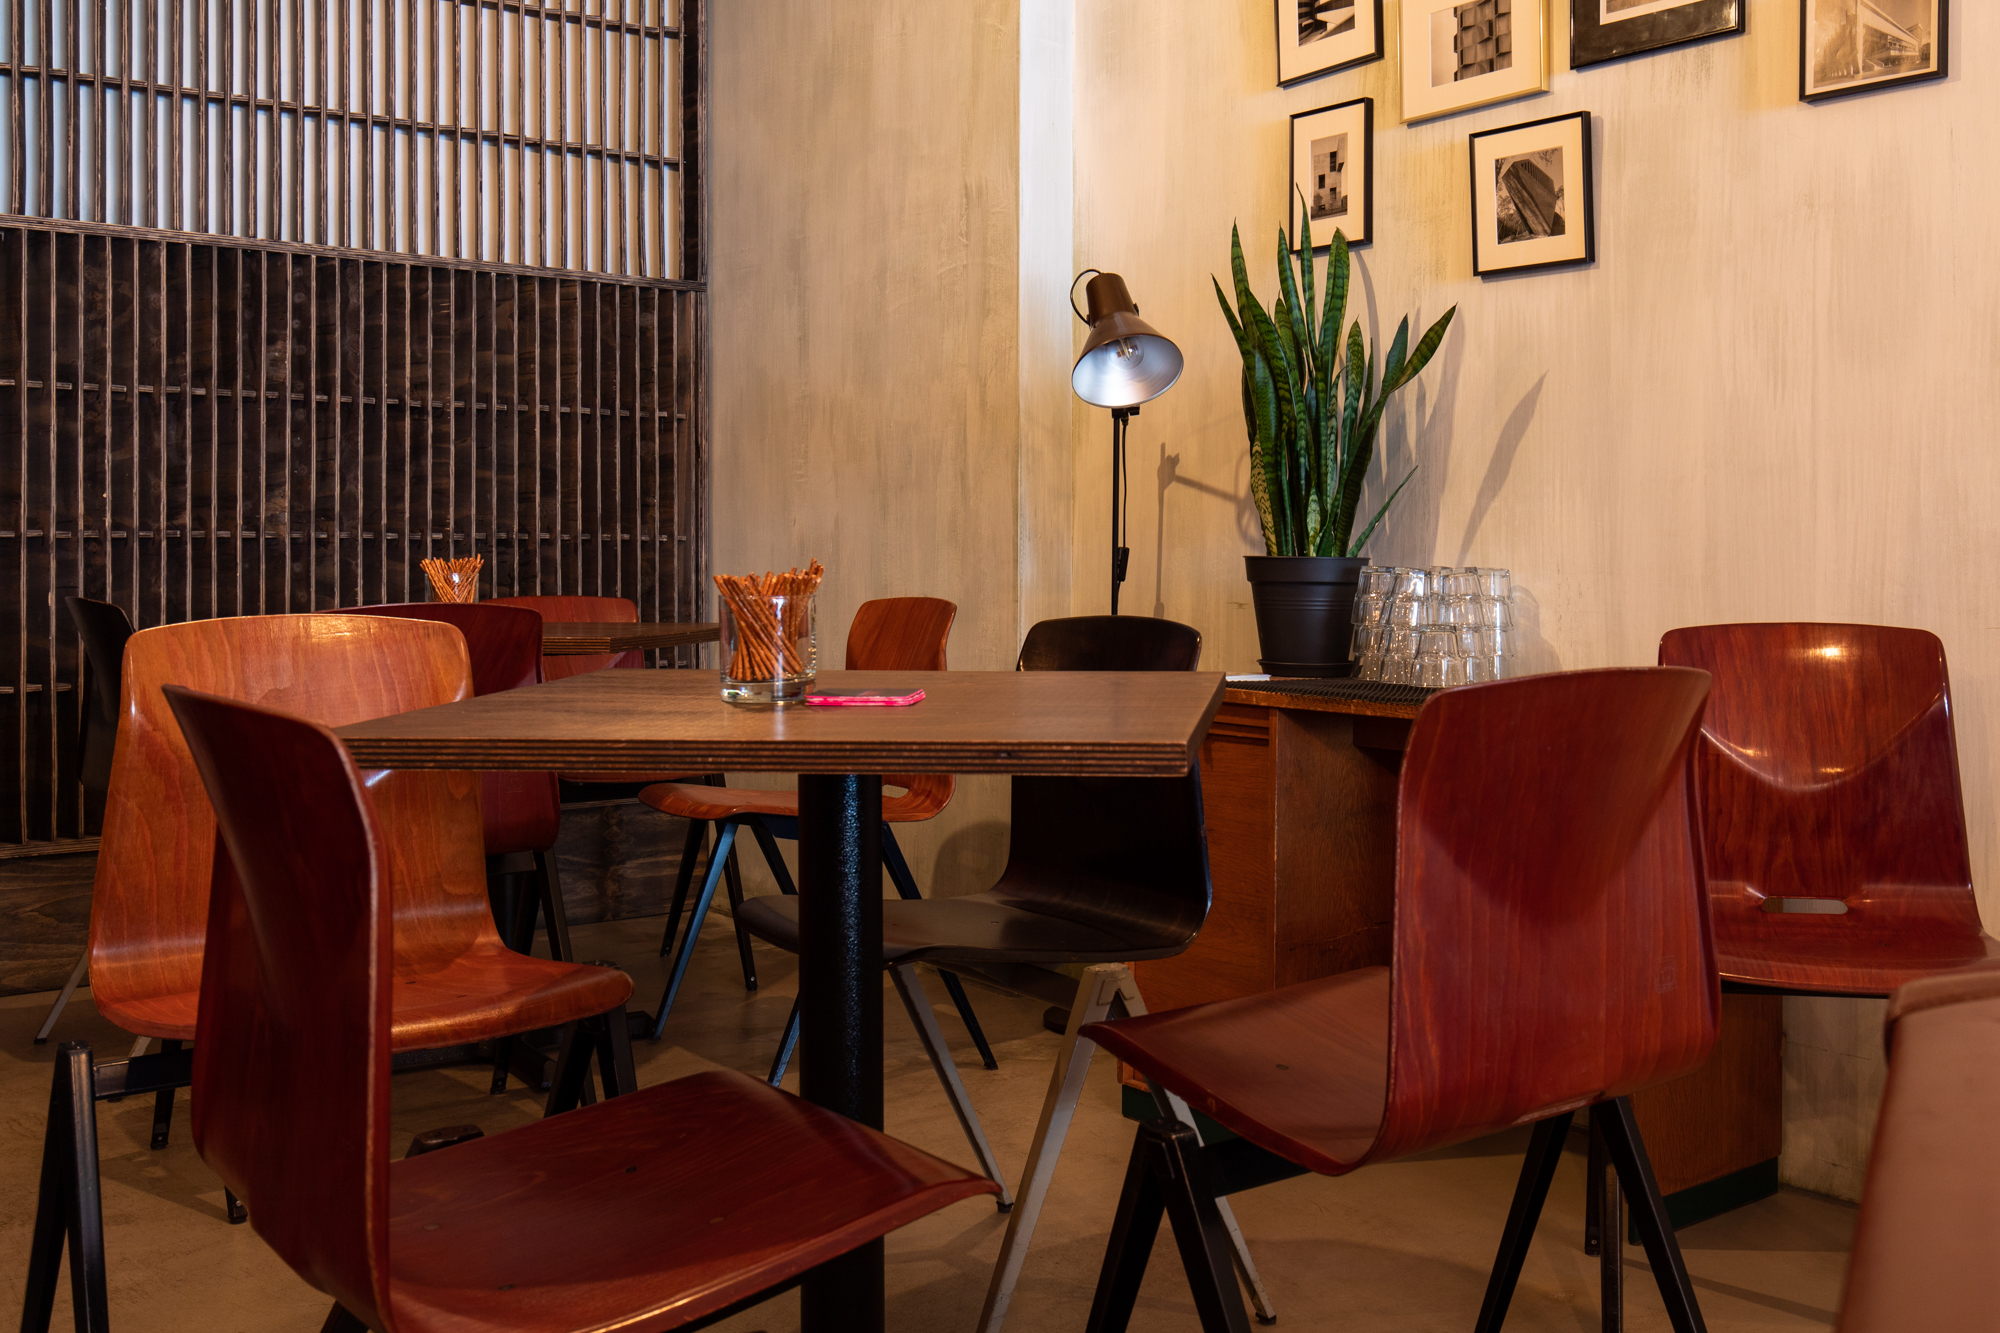 Table and chairs at Muted Horn, a craft beer bar in Berlin Neukölln